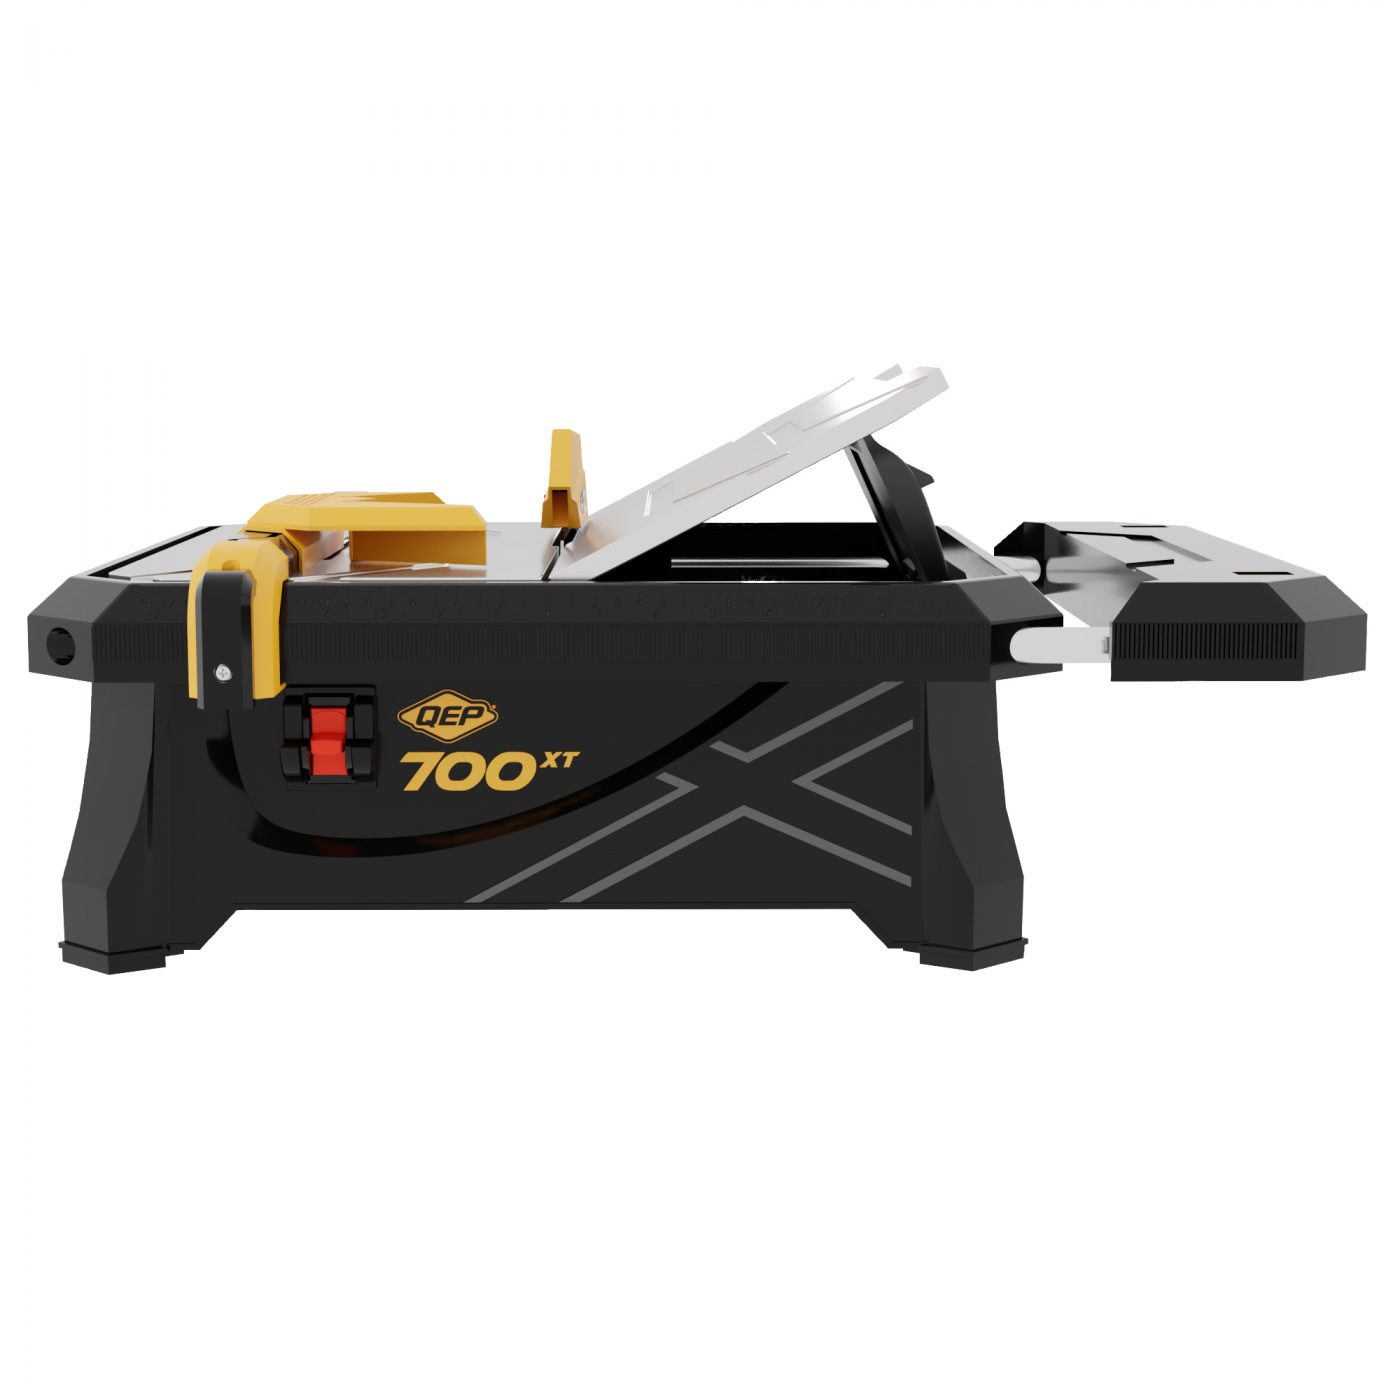 "7"" 700XT Tile Wet Saw"